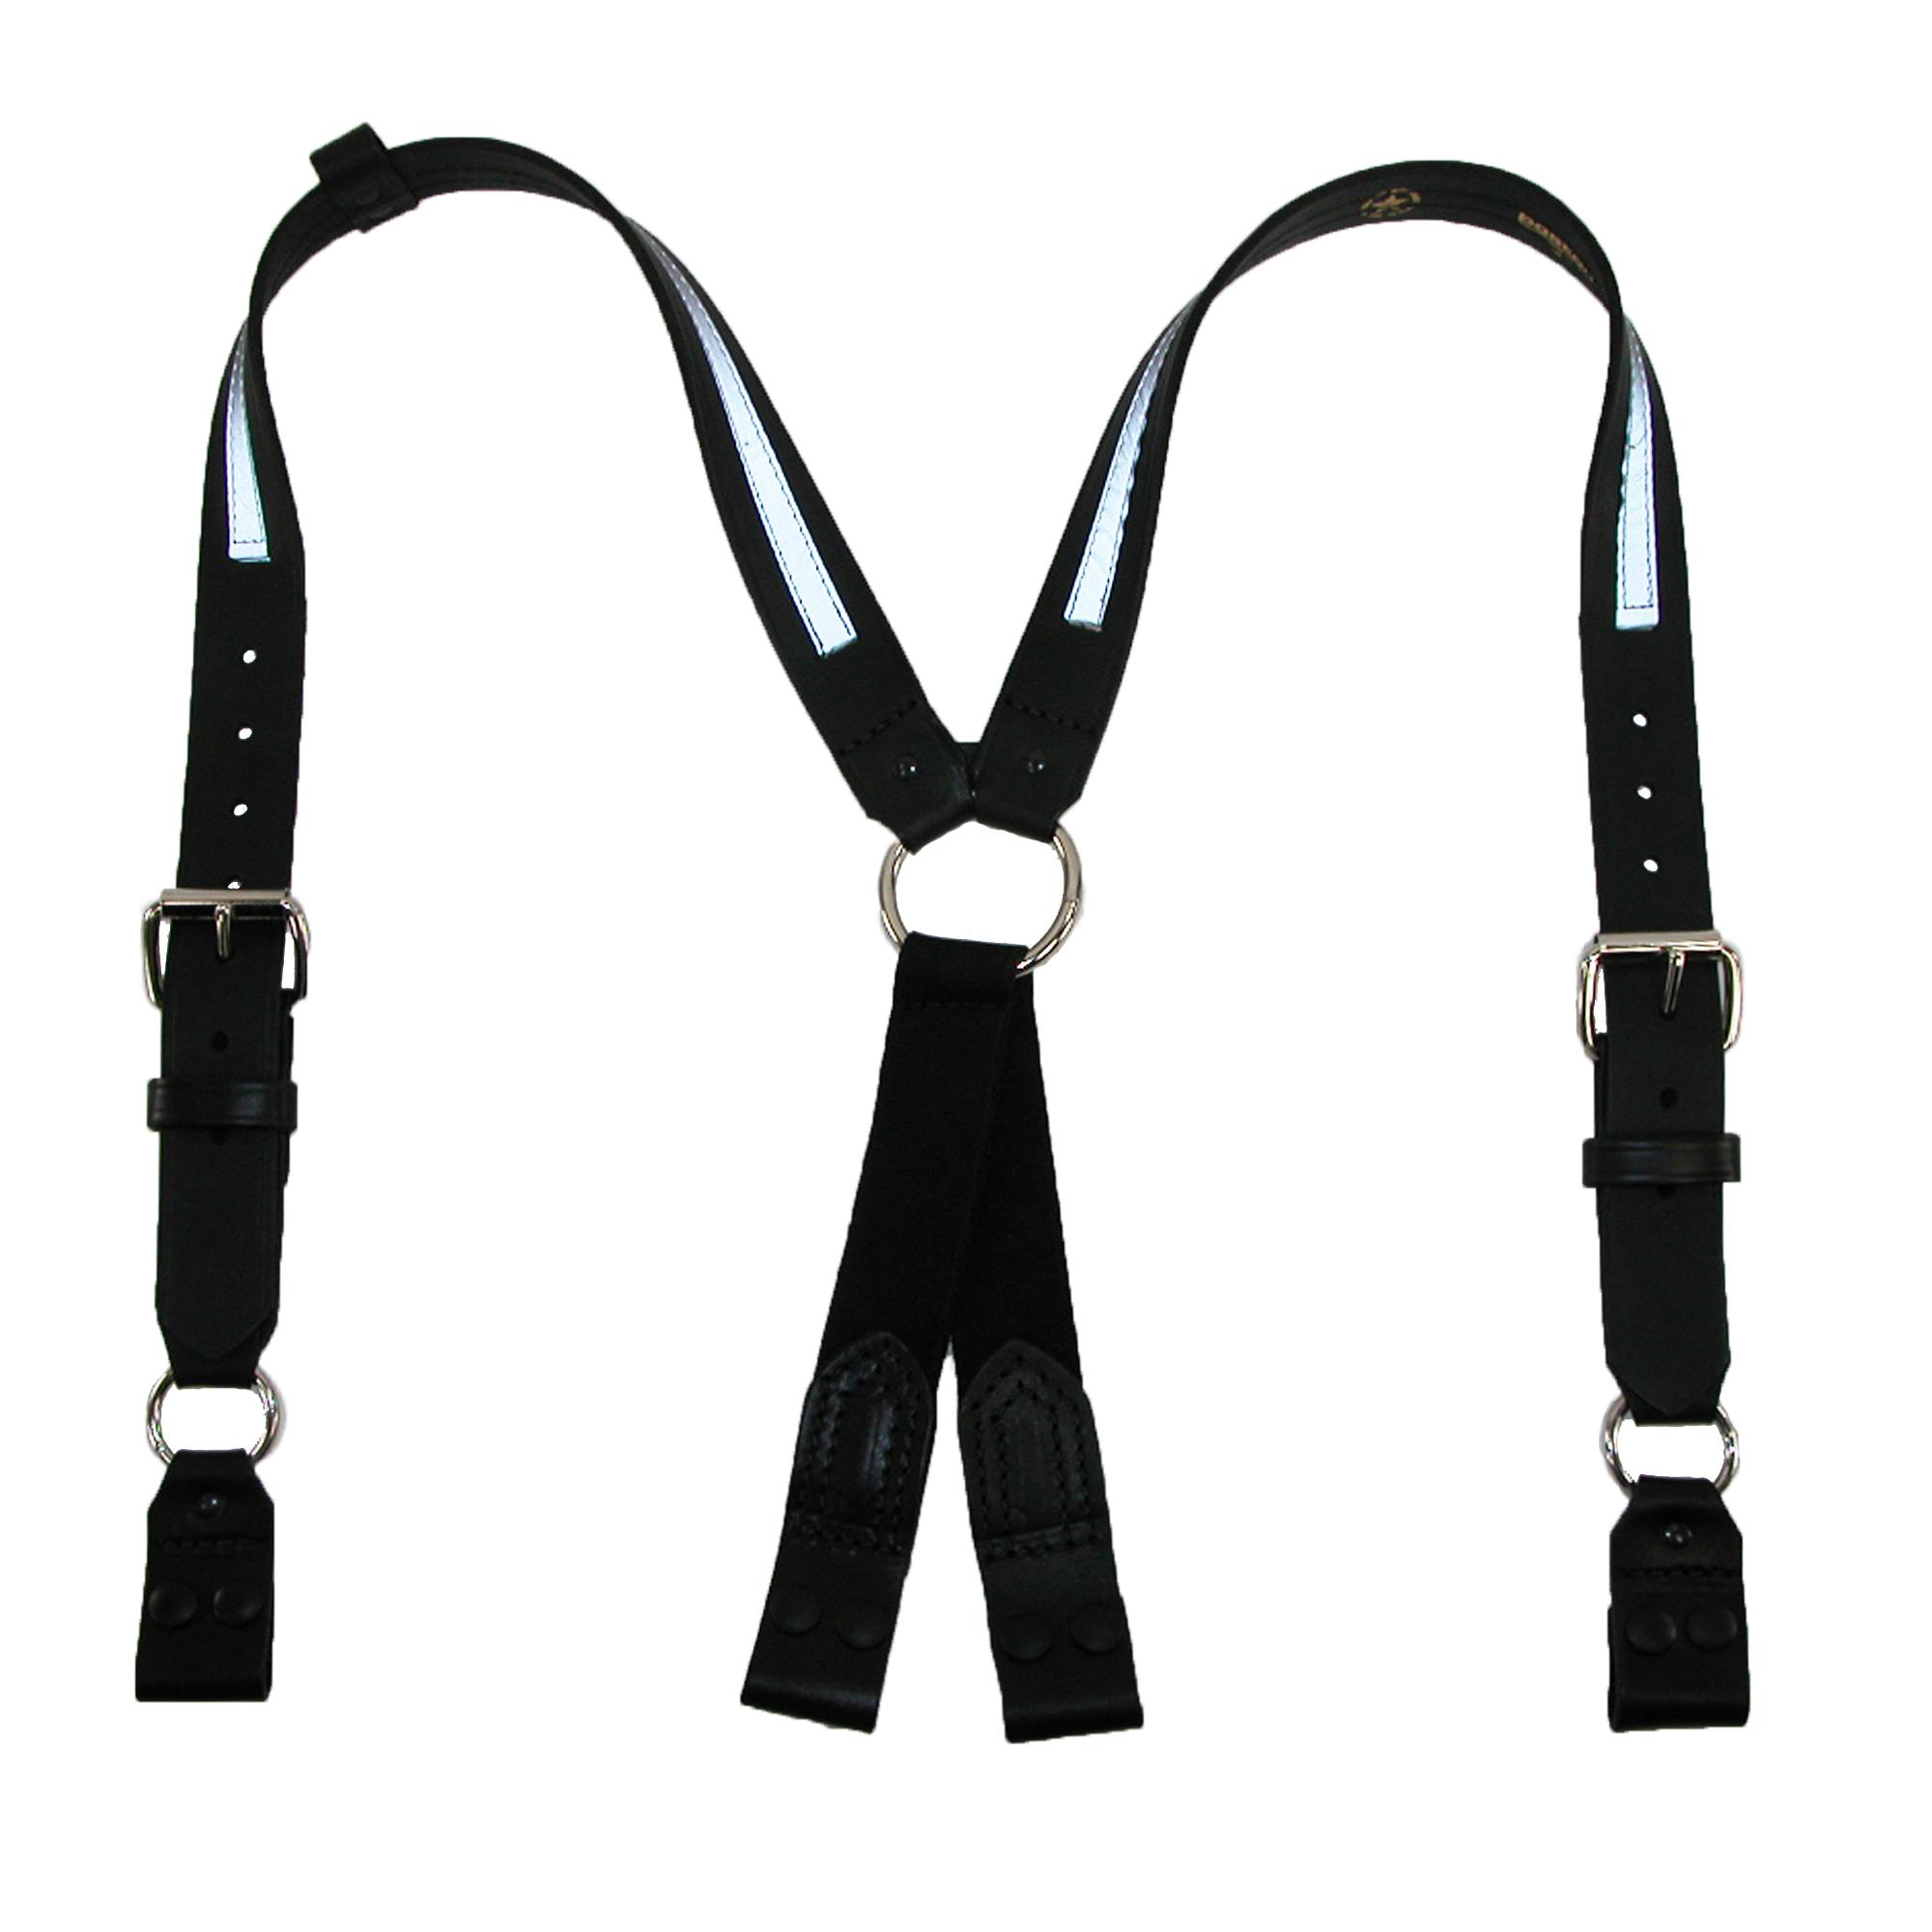 Boston Leather Leather Reflective Loop End Fireman Work Suspenders